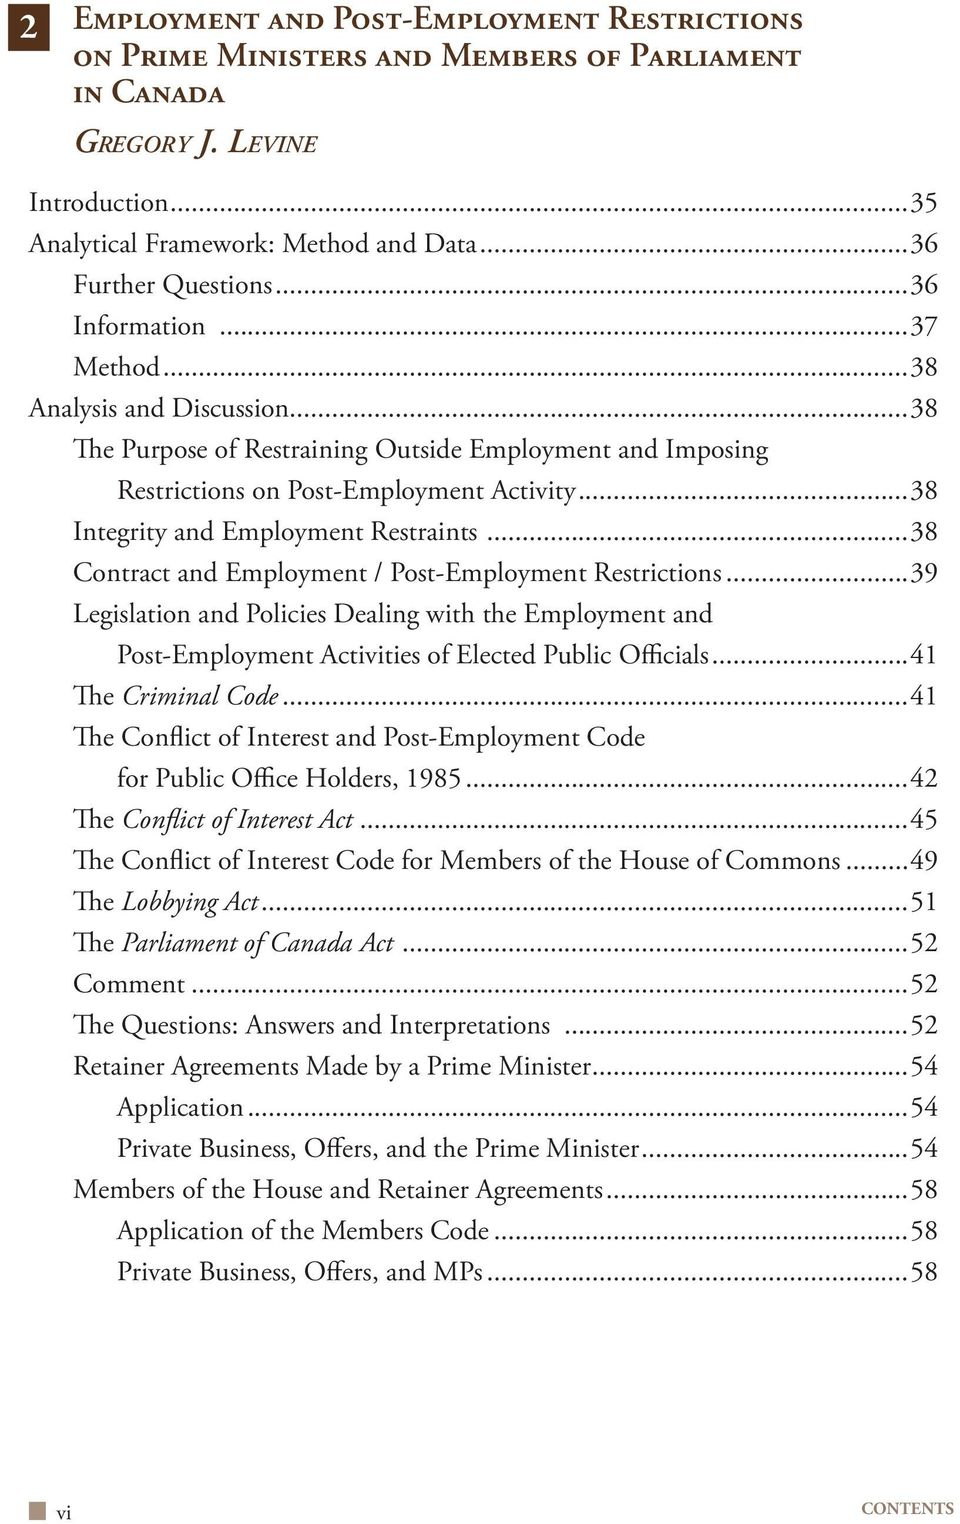 ..38 Integrity and Employment Restraints...38 Contract and Employment / Post-Employment Restrictions.